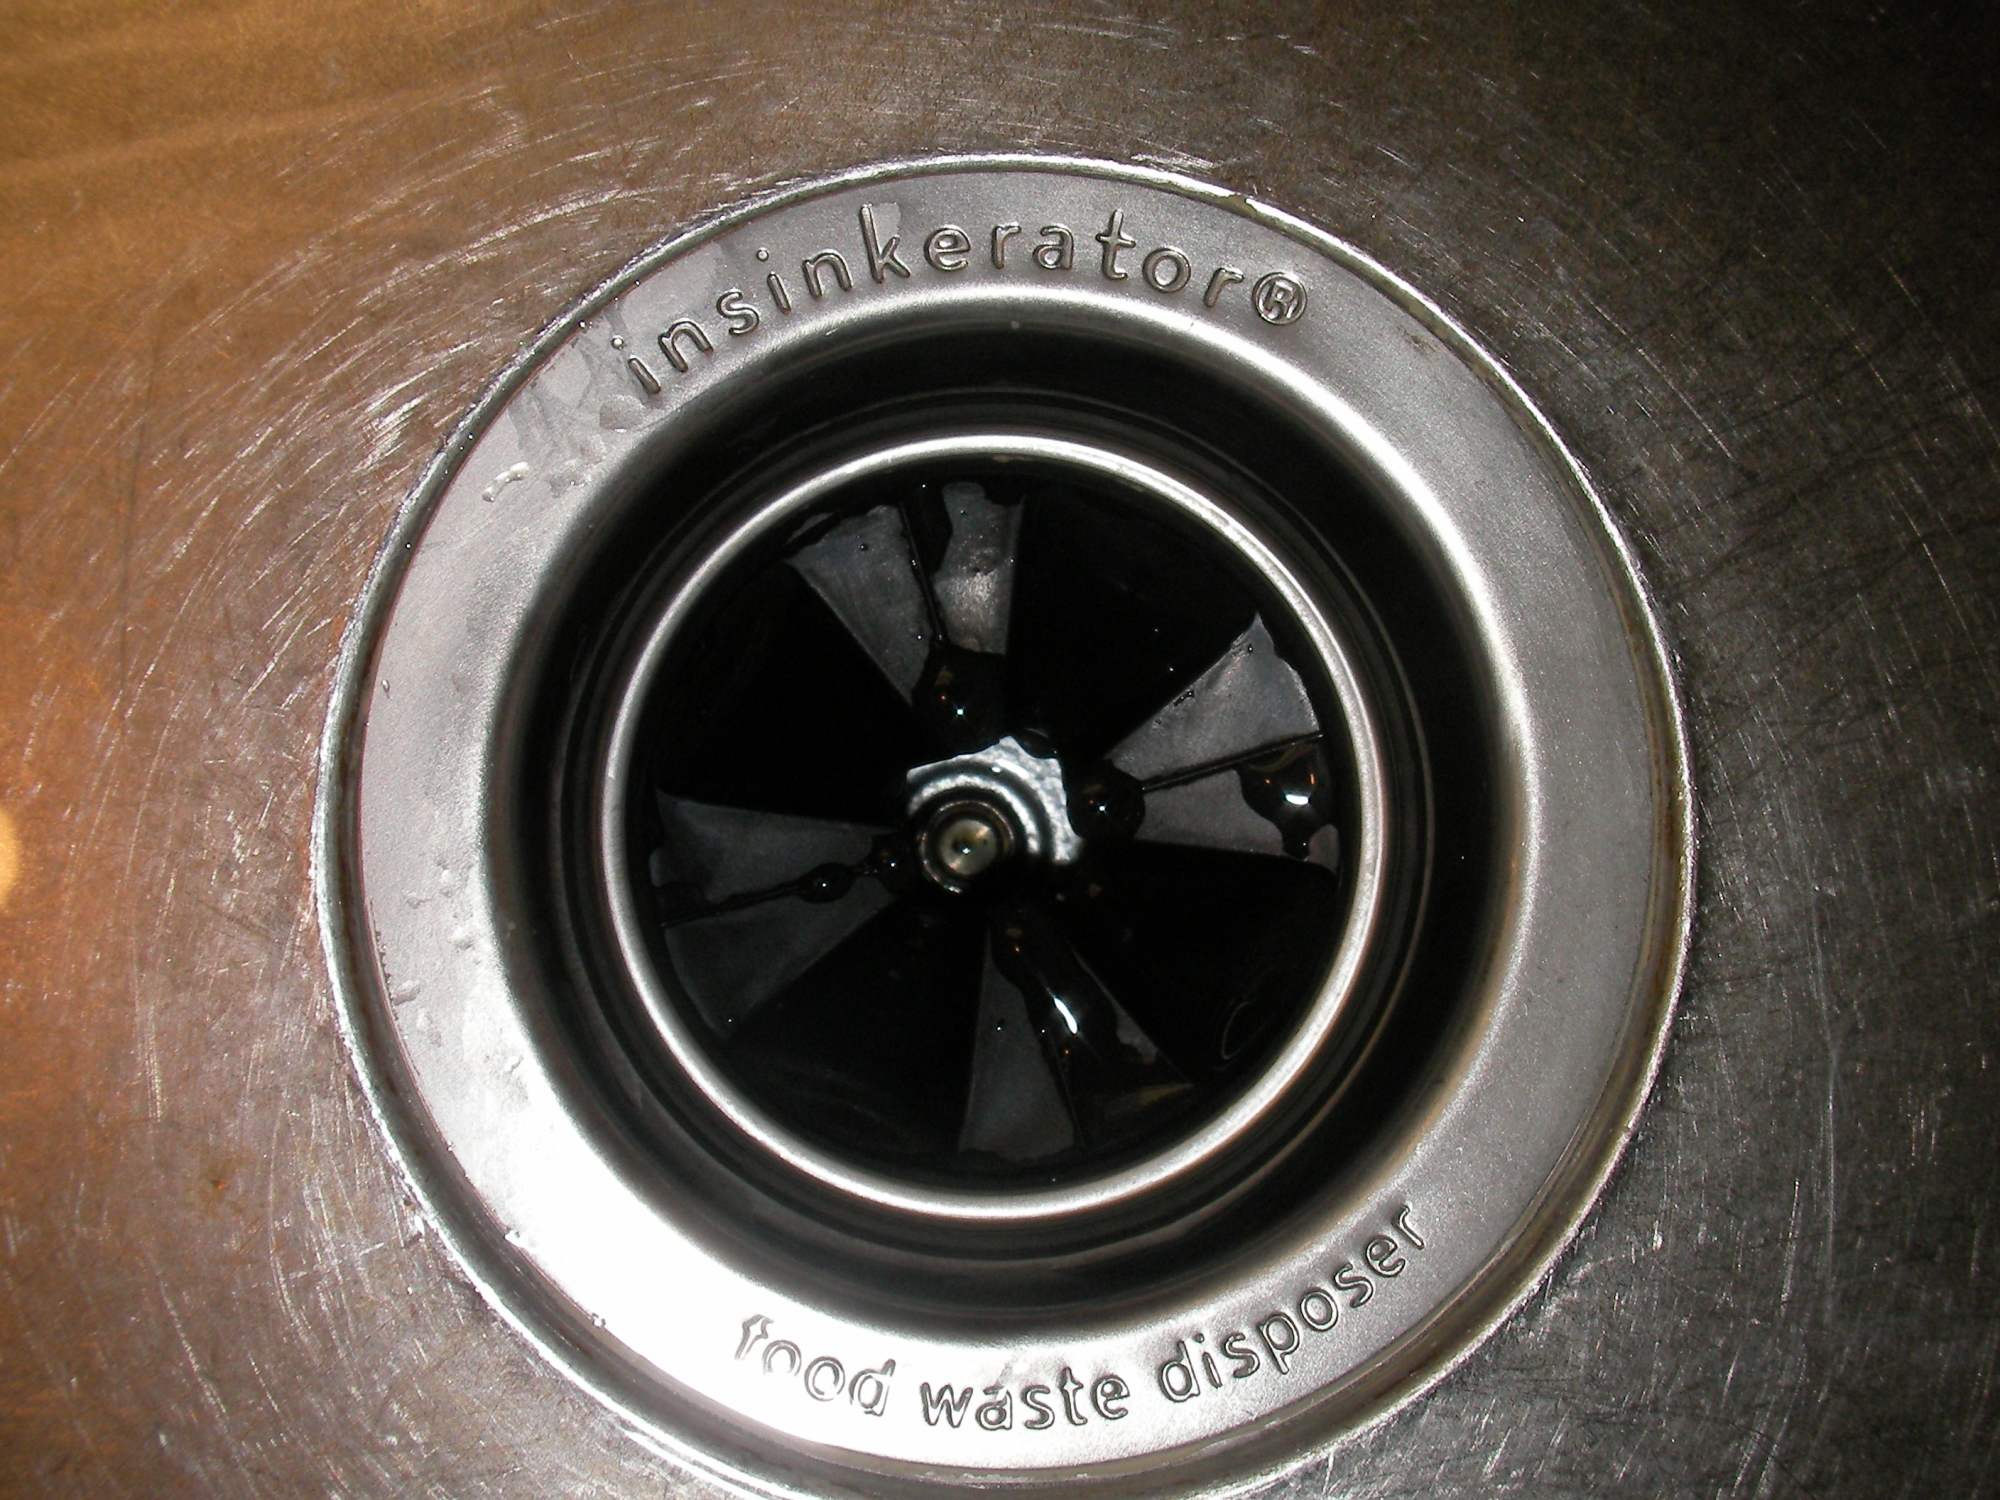 Premier Resource Network - Fixed Garbage Disposal